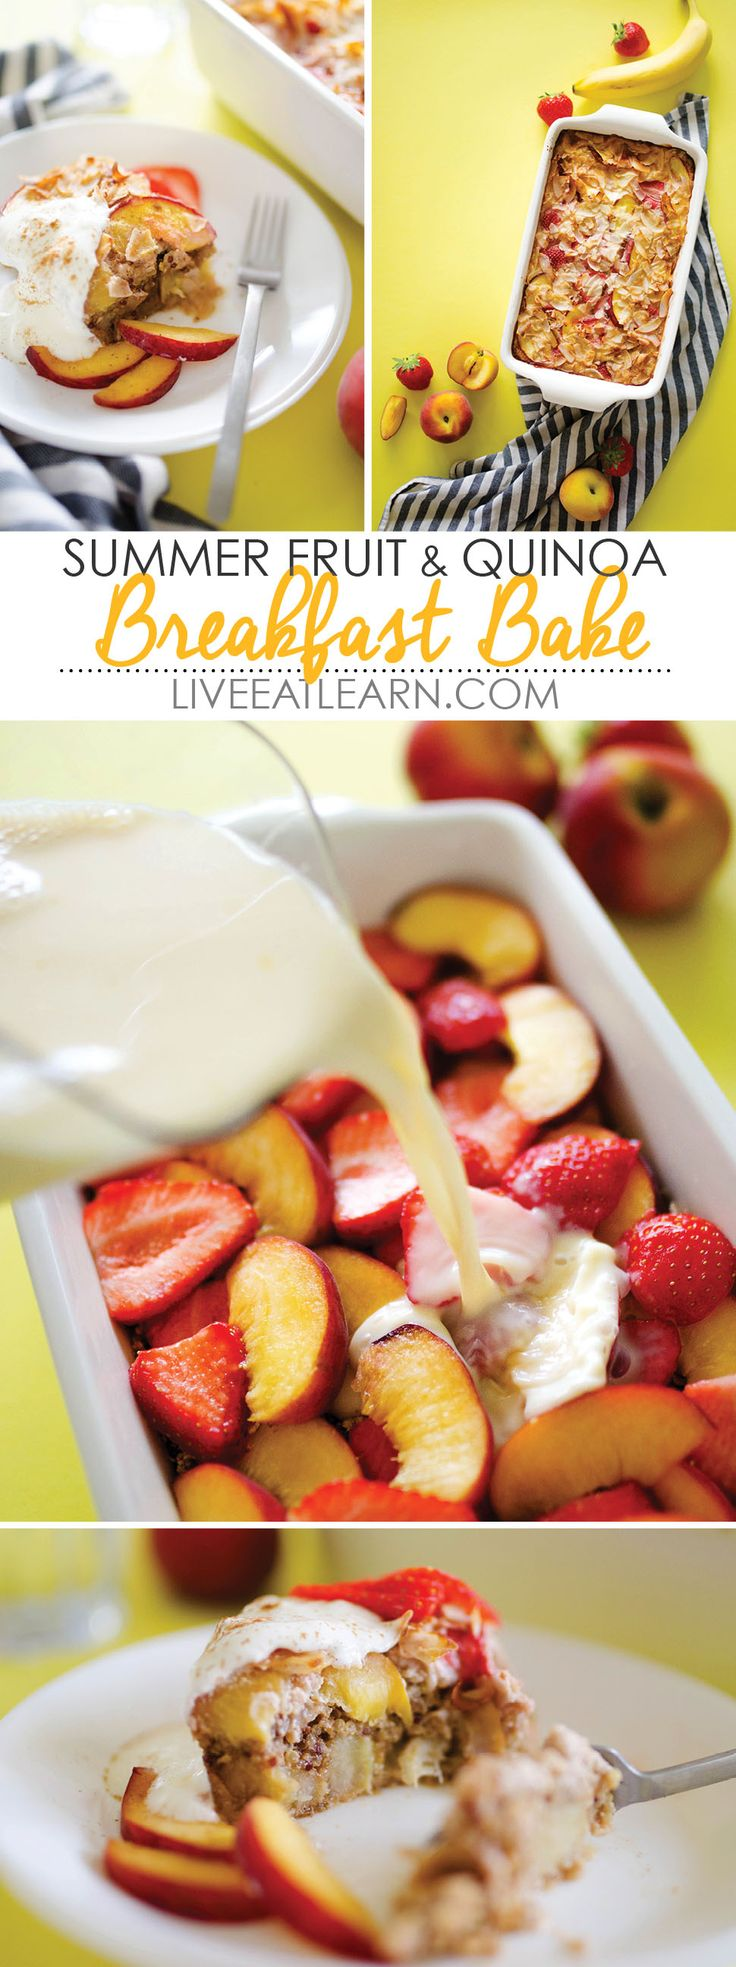 This Summer Fruit and Quinoa Breakfast Bake recipe is a healthy, whole-grain way…